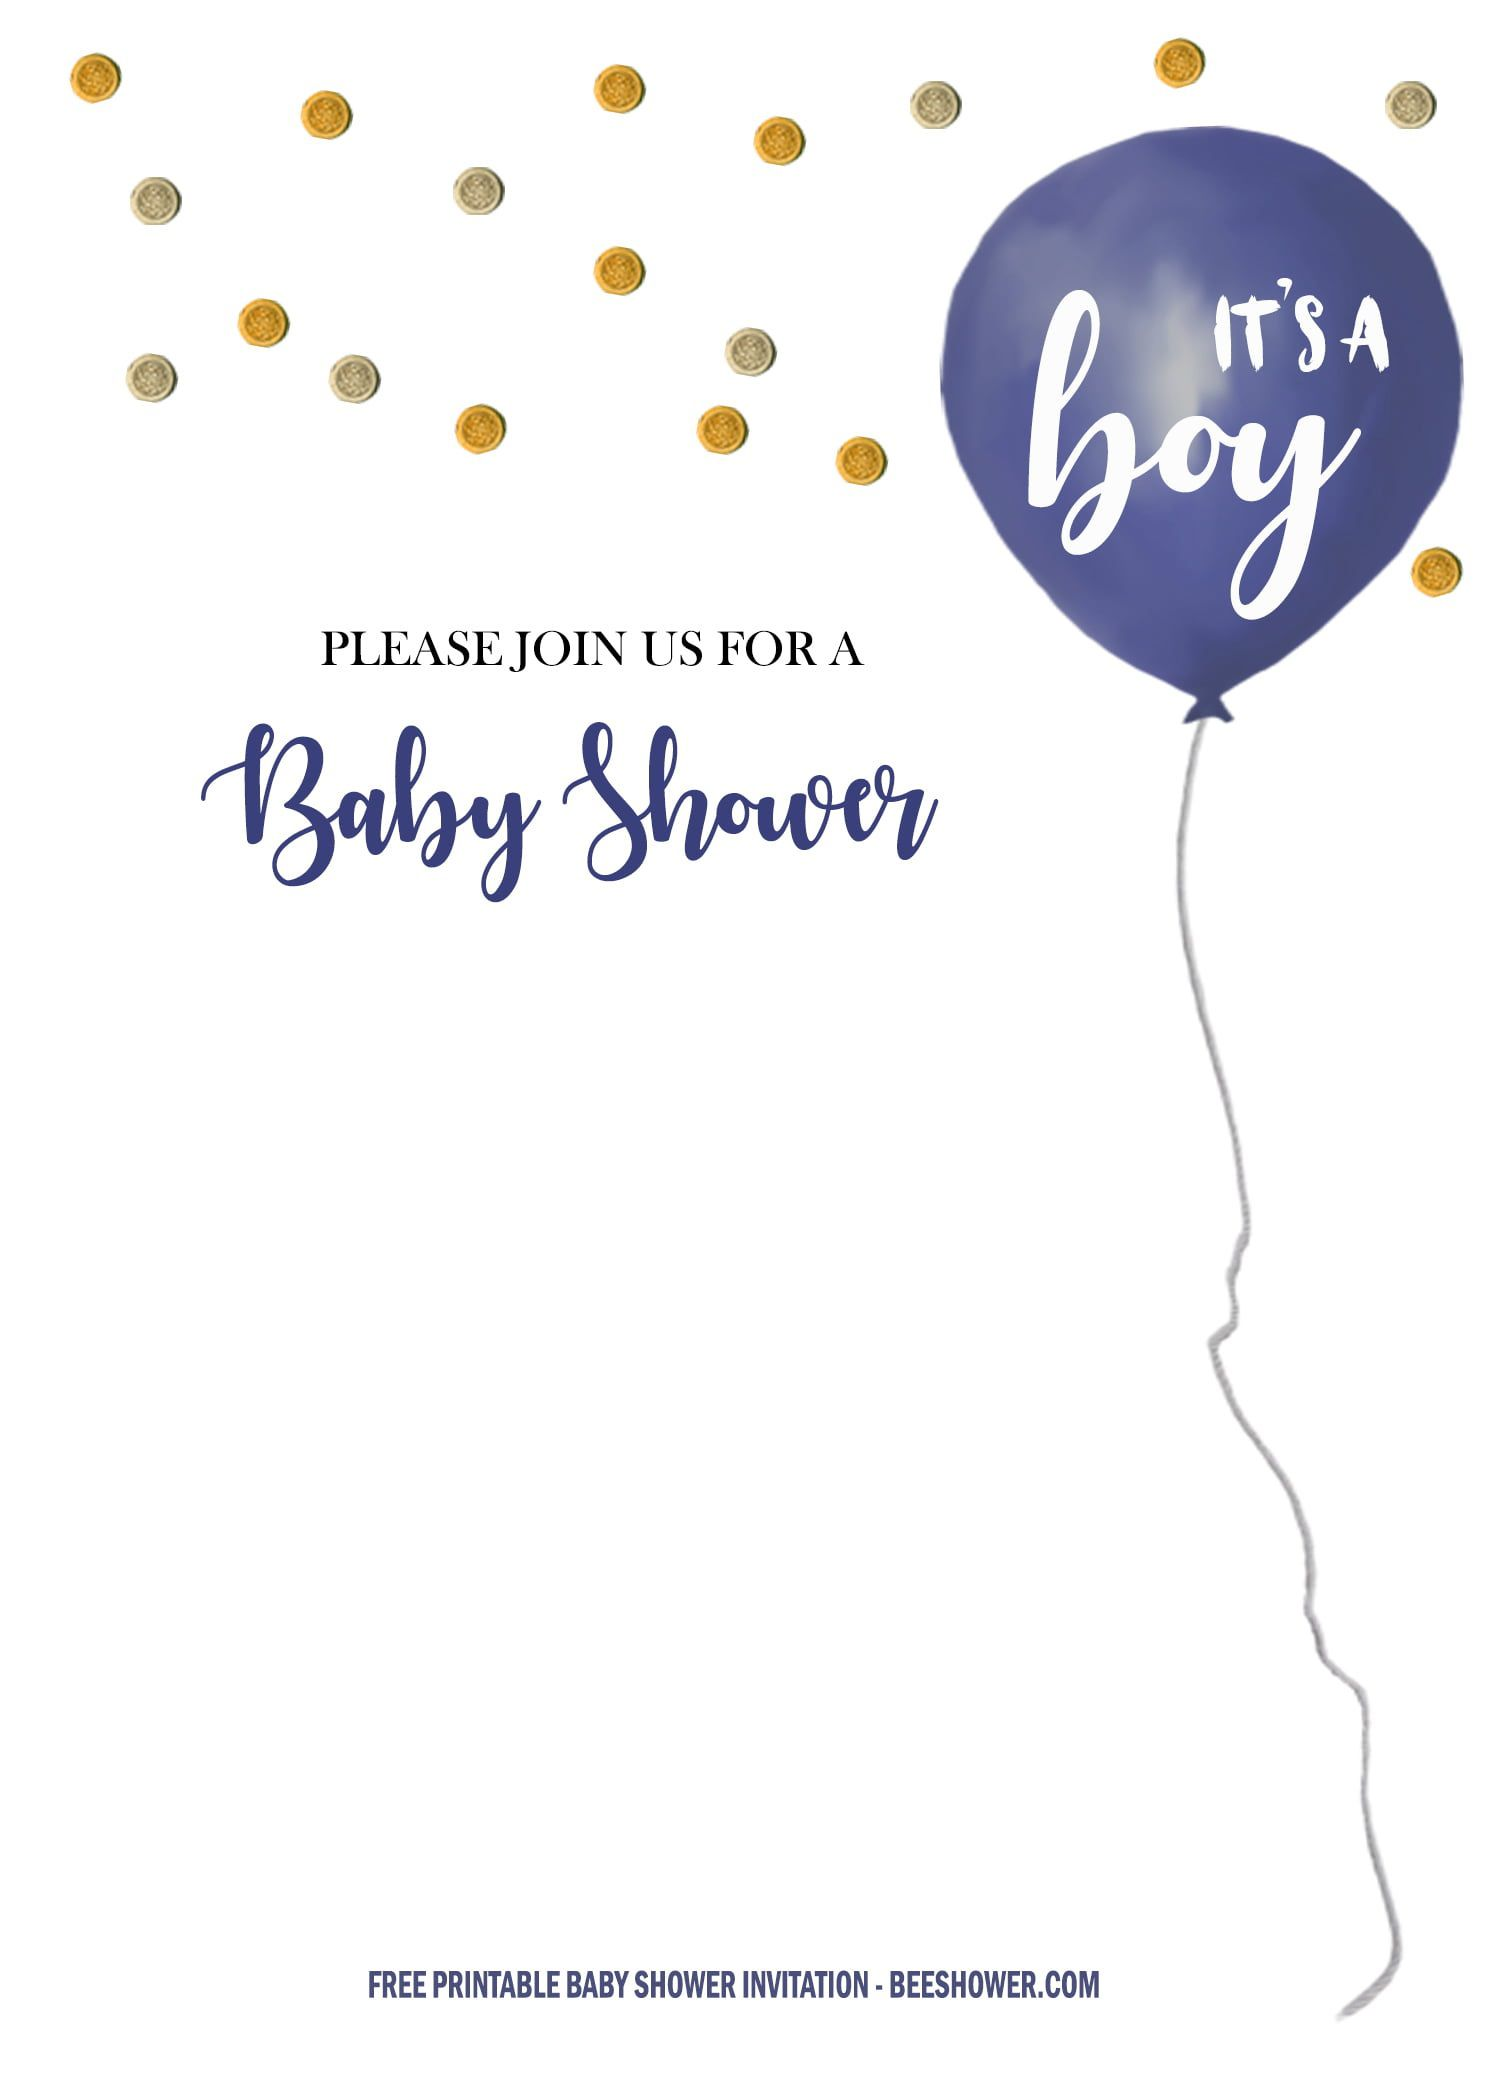 010 Staggering Free Baby Shower Invitation Template For Boy High Def Full